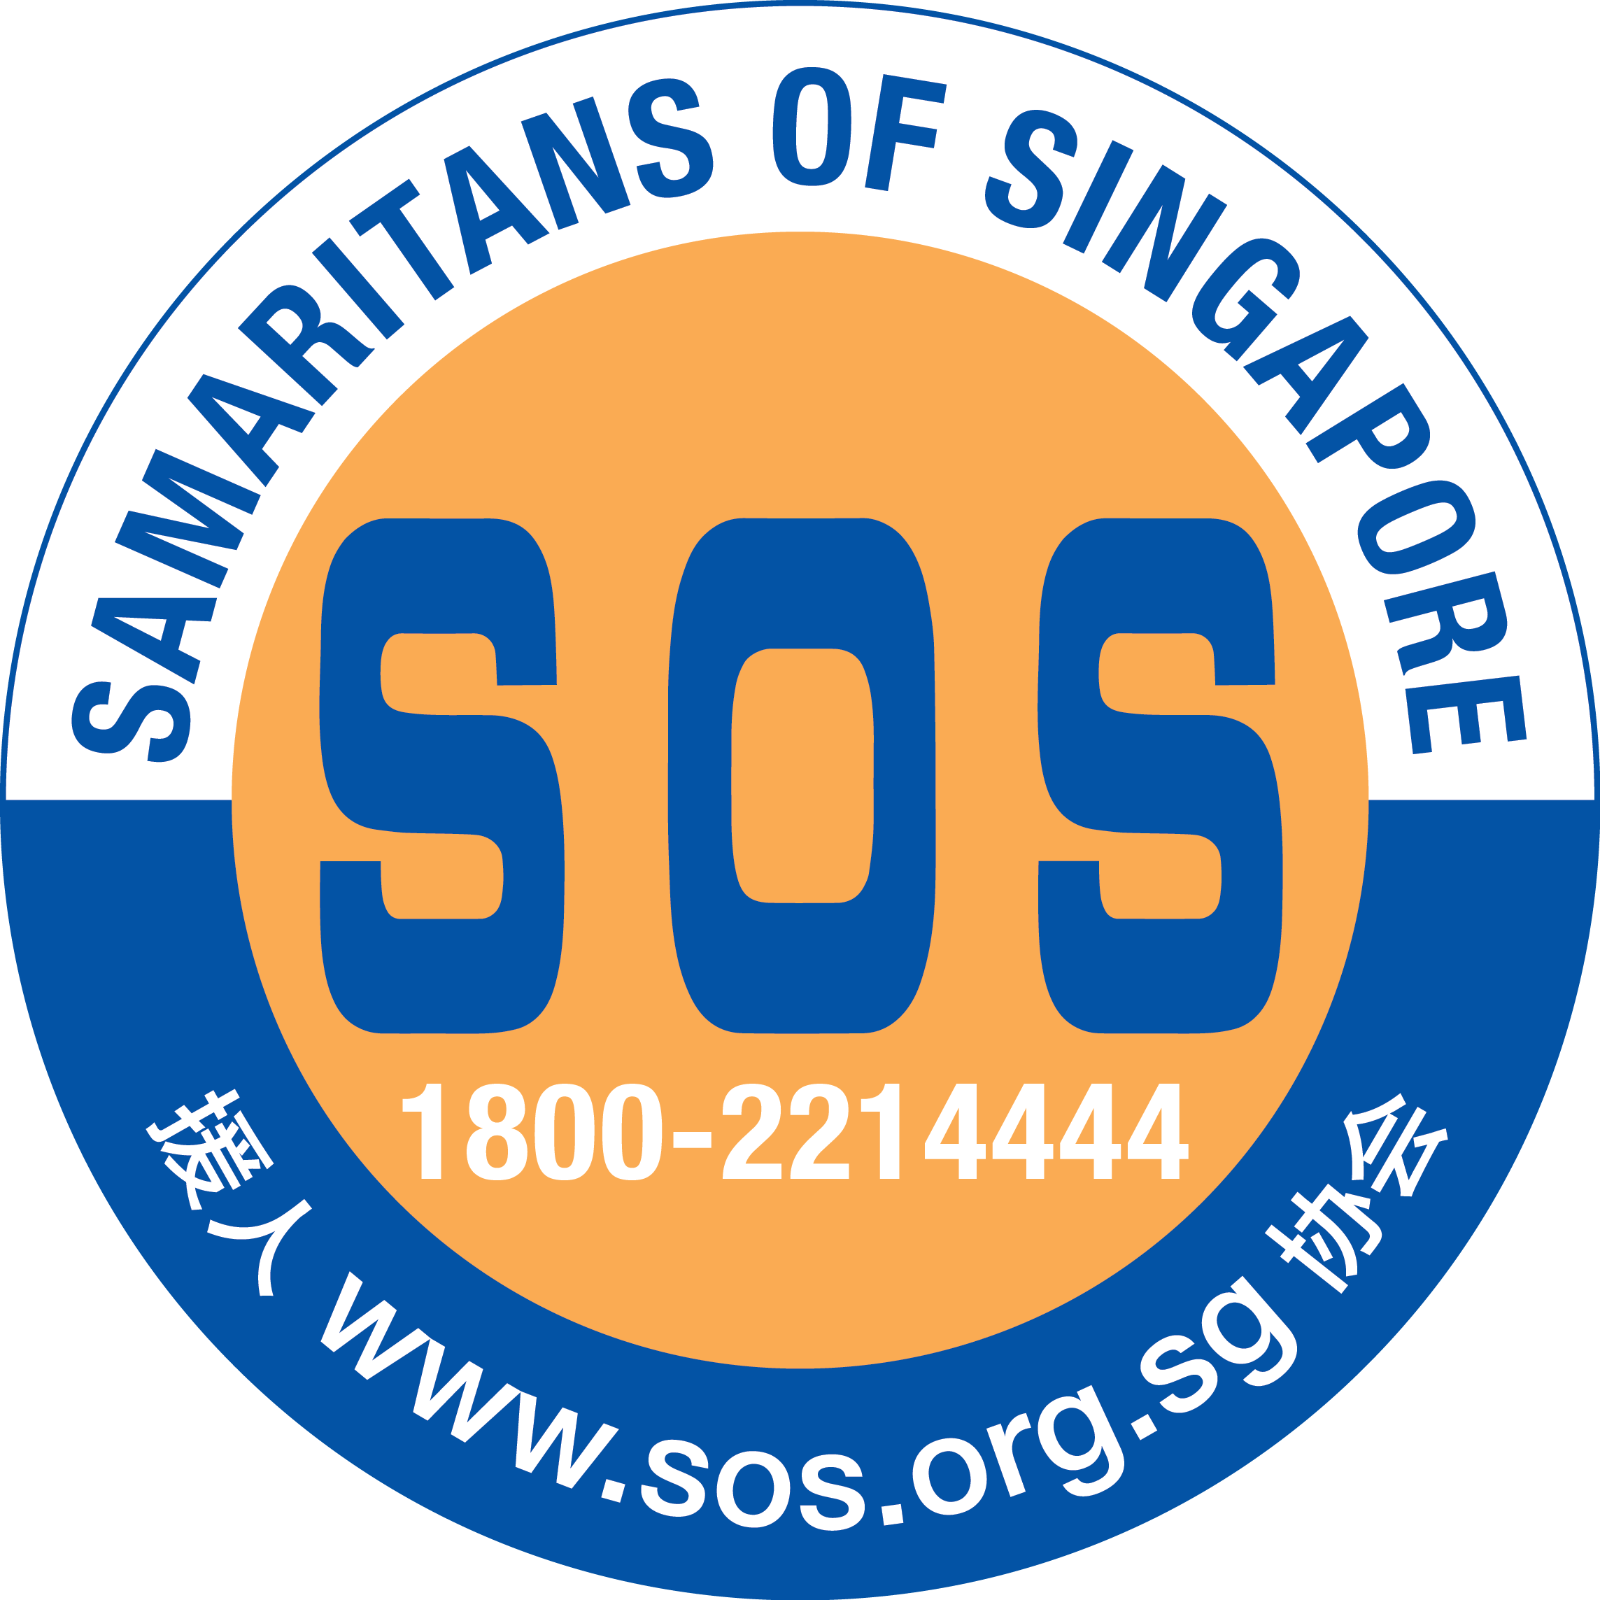 S.O.S. (Samaritans Of Singapore)